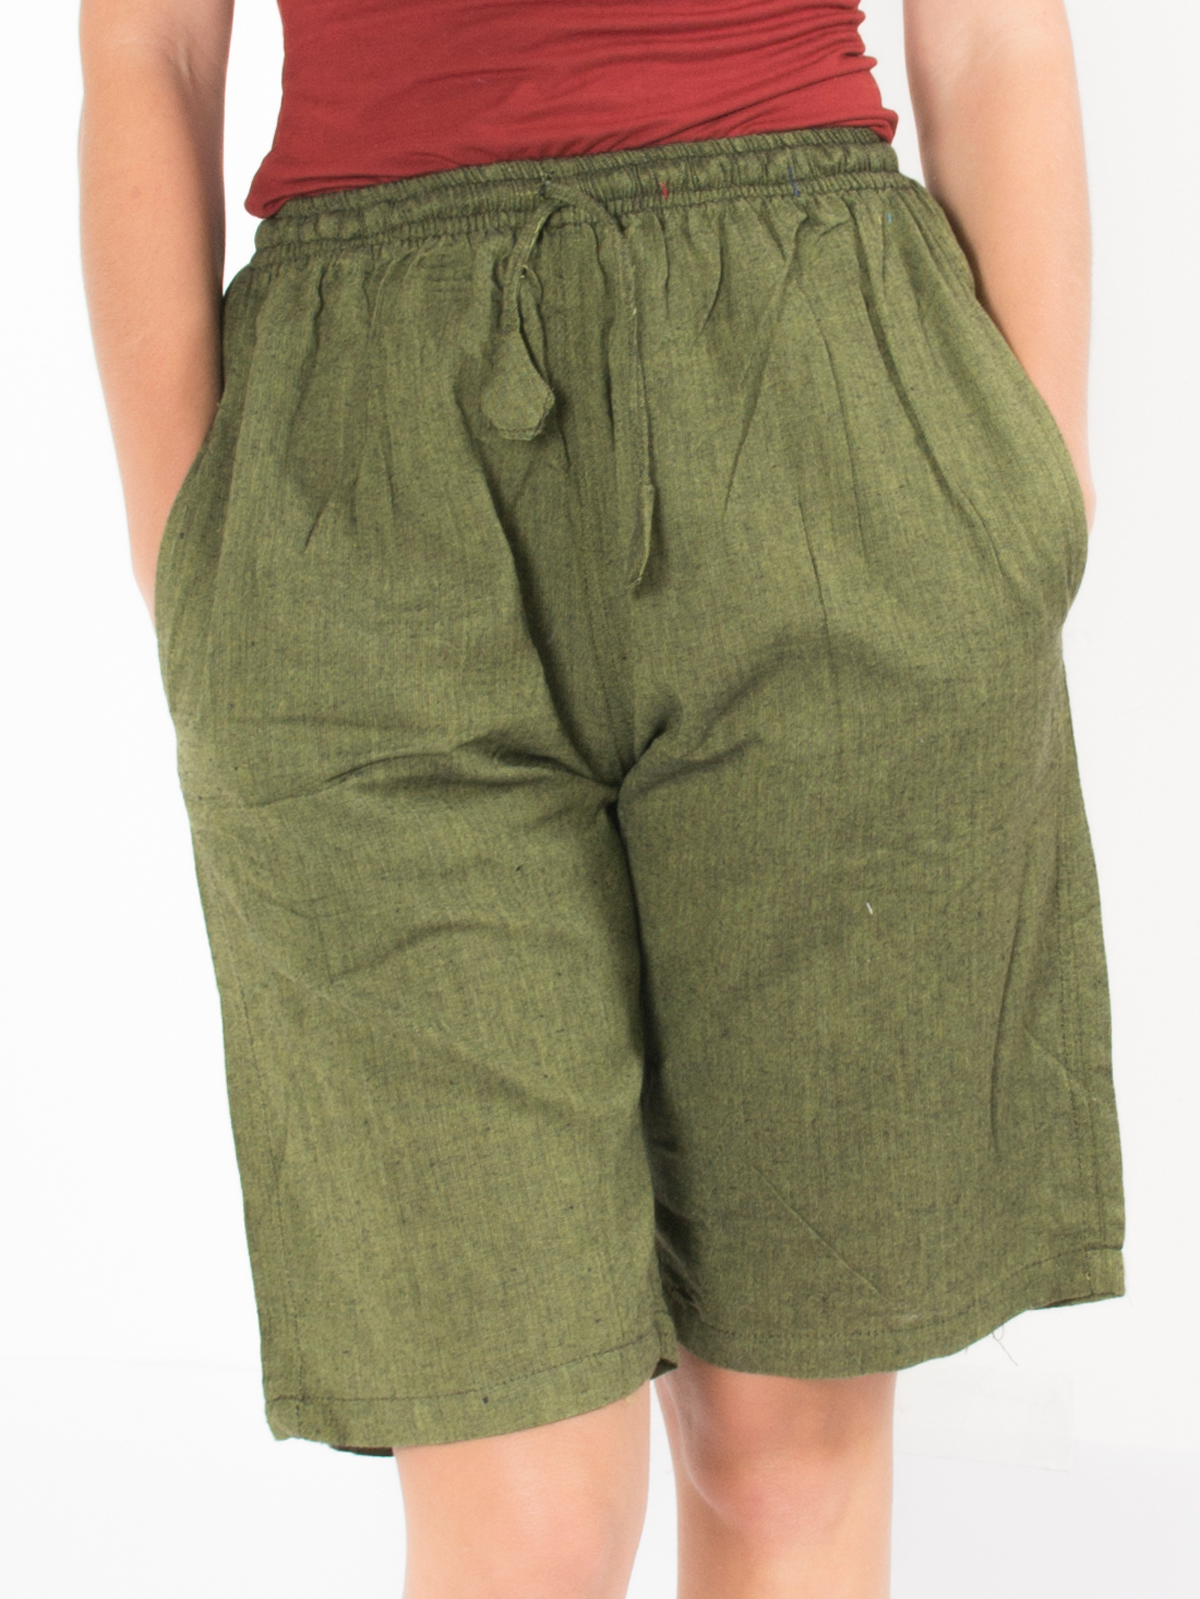 Short ethnique vert kaki uni simple